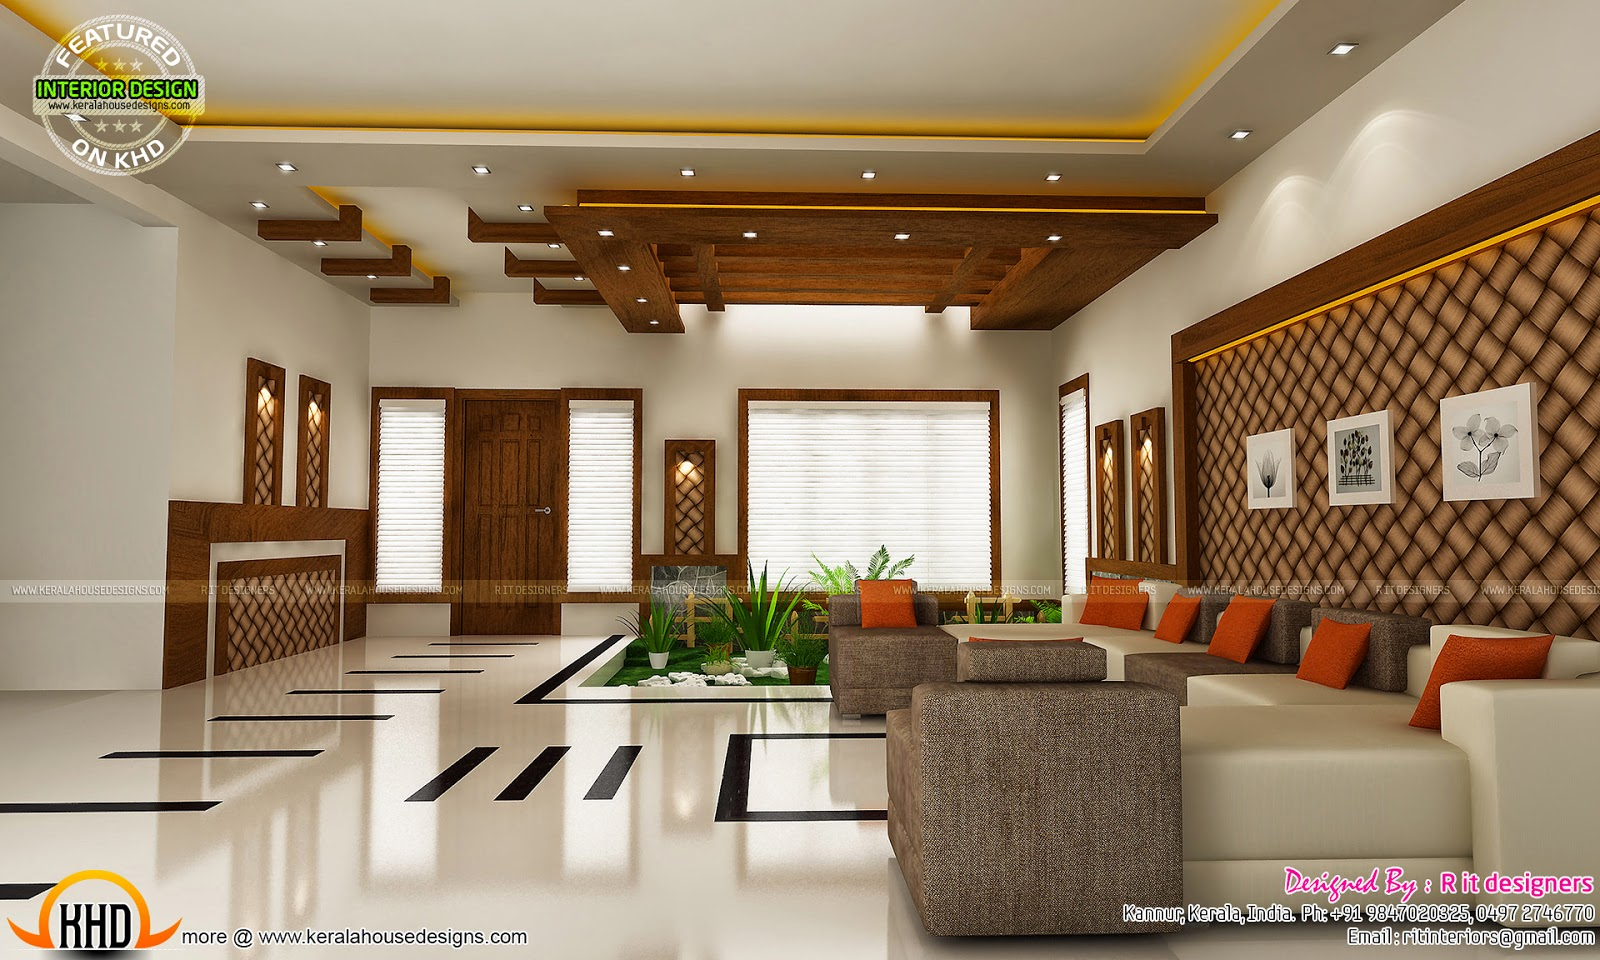 Modern and unique dining kitchen interior kerala home for Interior design ideas for small homes in kerala